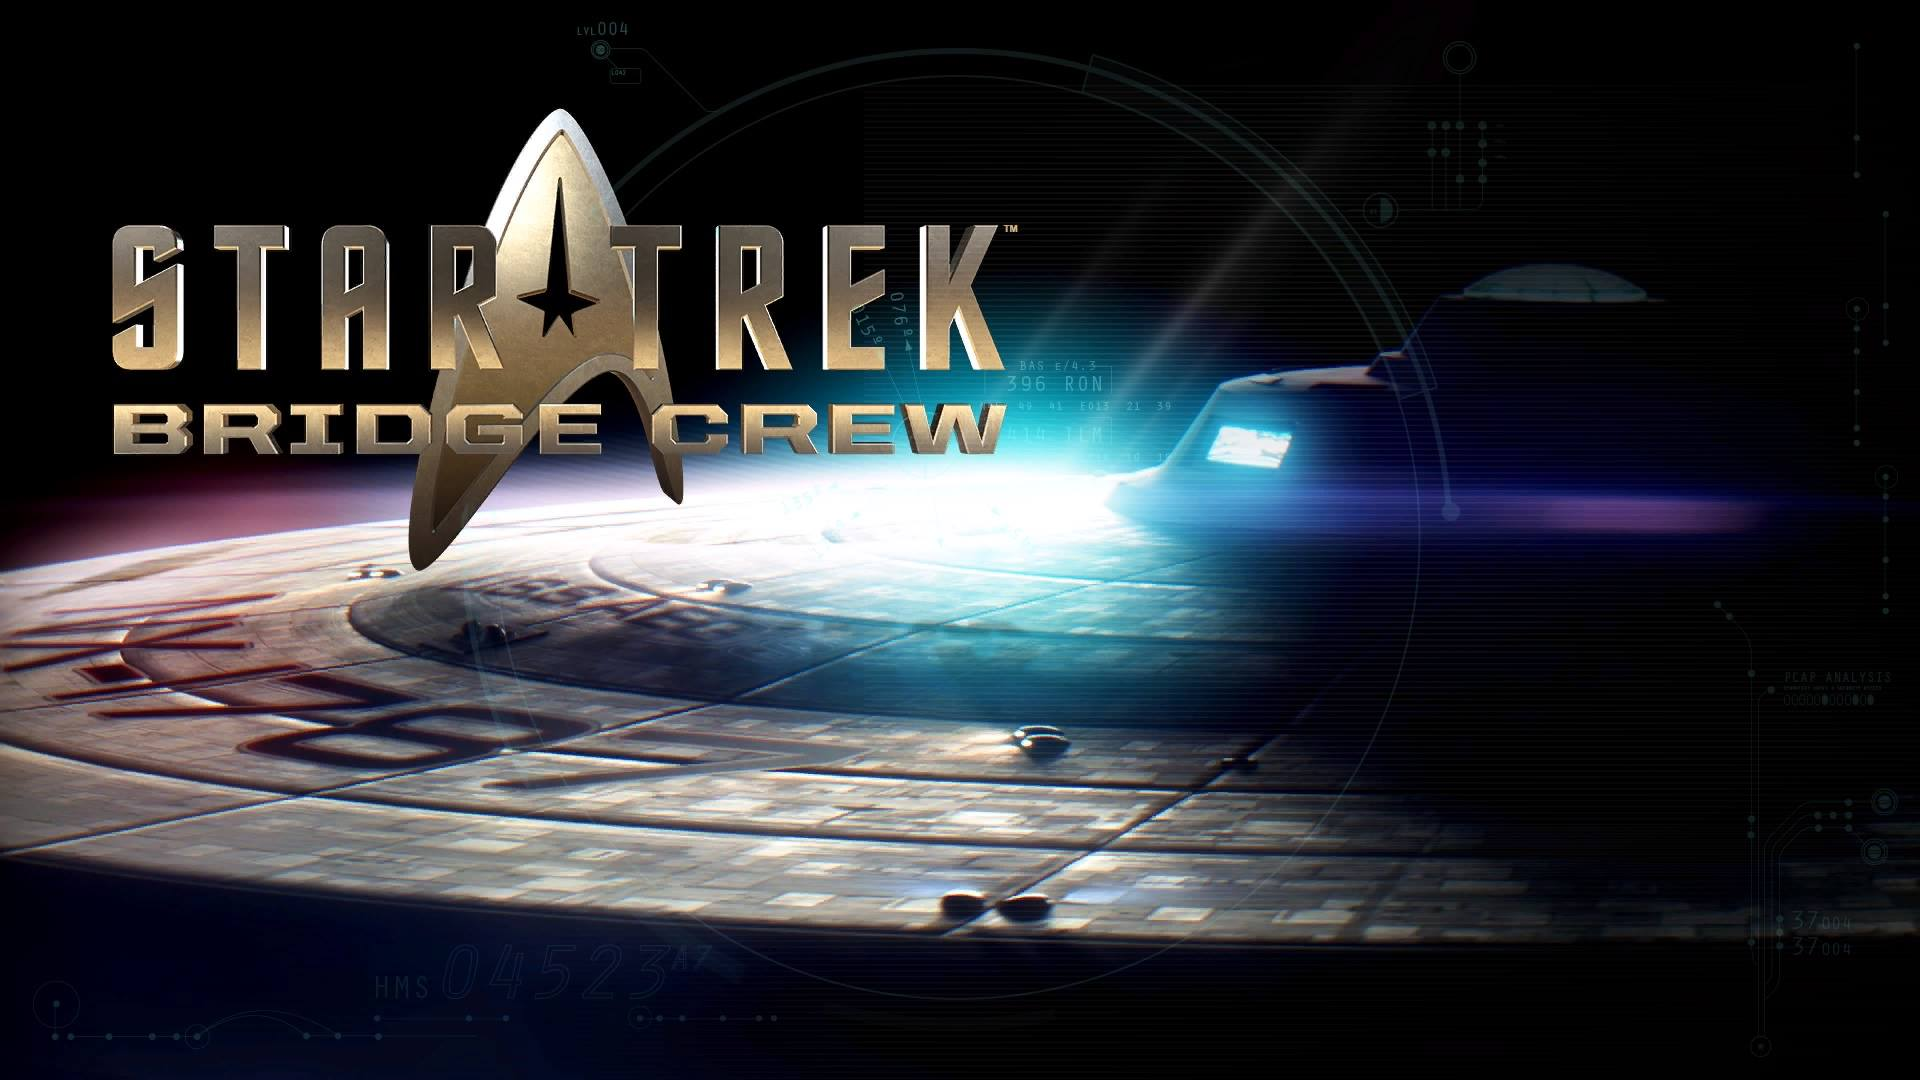 Star Trek Bridge Crew logo